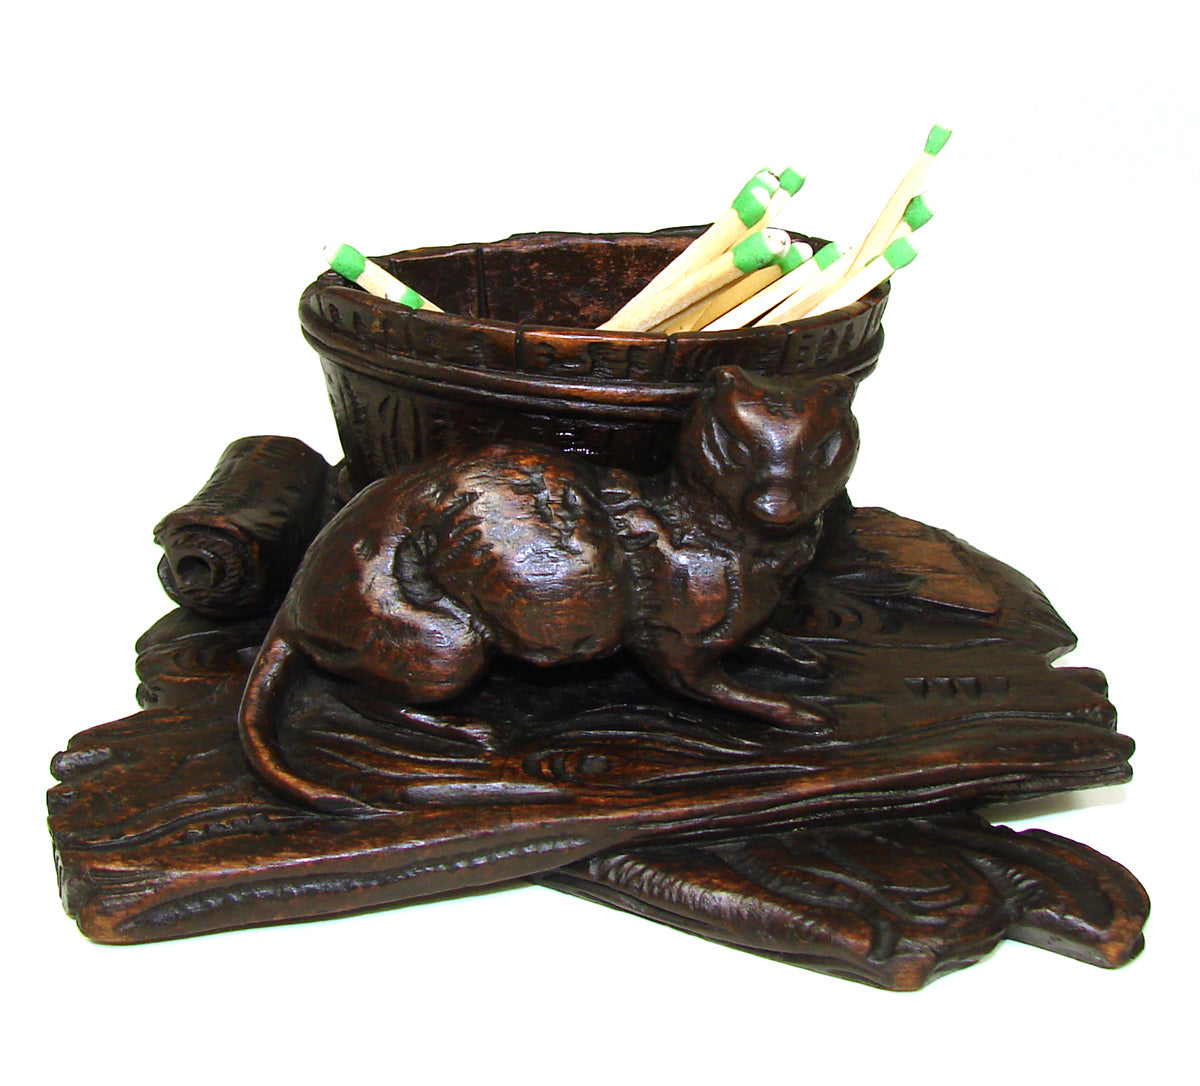 Delightful Antique Black Forest Toothpick or Match Holder, Rare CAT Figure